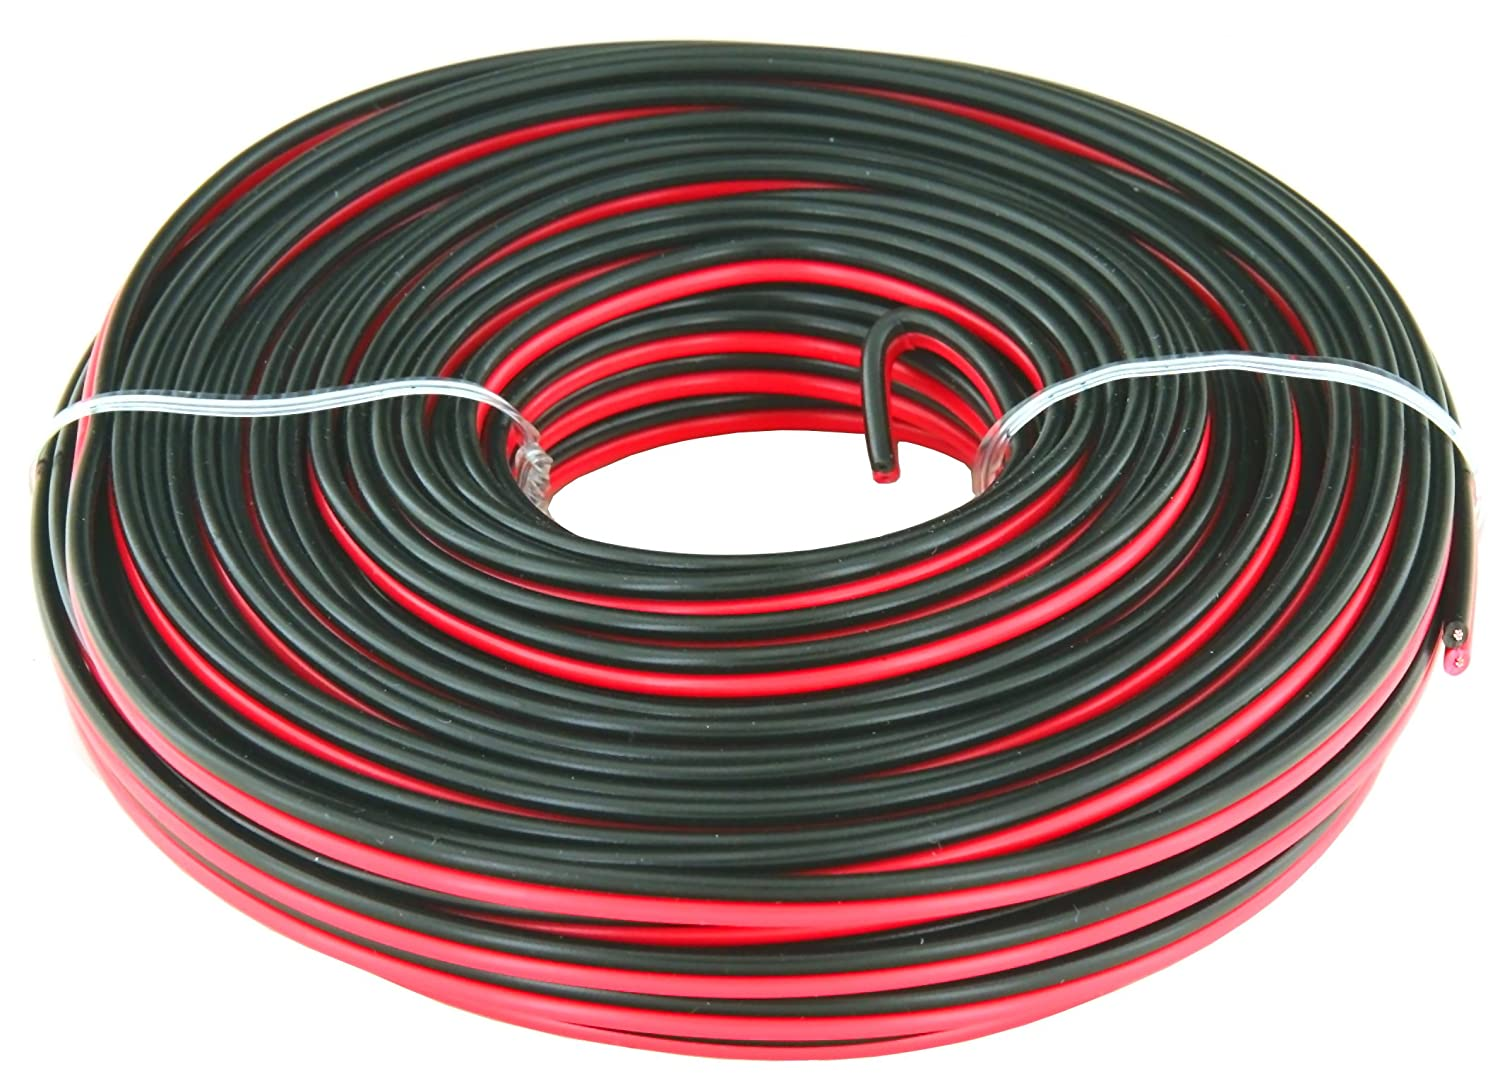 GS Power Flexible 24 AWG Pure Copper 50 ft Red /& 50 ft Black Bonded Zip Cord Cable for Car Audio Stereo LED Light 12Volt Automotive Harness Wiring American Wire Gauge Also in 100 /& 200 Feet Roll